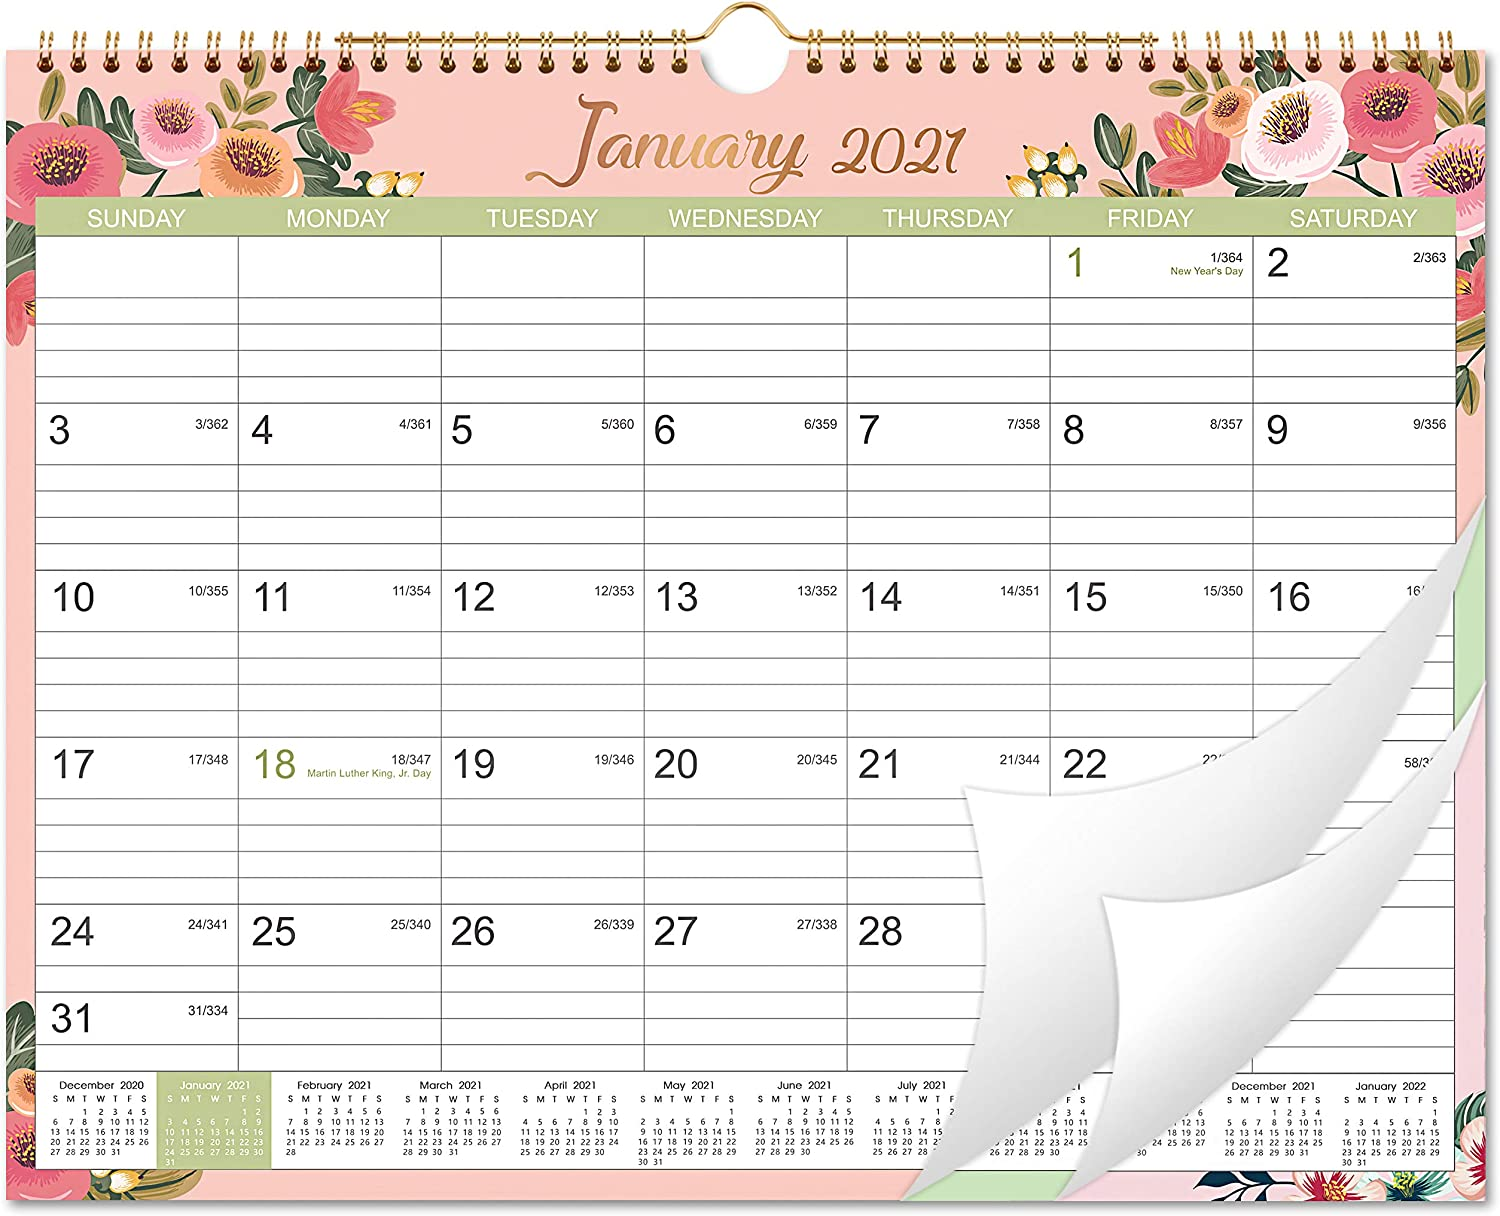 """2021 Calendar - 12 Monthly Wall Calendar with Thick Paper, 15"""" x 11.5"""", Jan. 2021 - Dec. 2021, Twin-Wire Binding + Hanging Hook + Large Ruled Blocks with Julian Dates - Floral"""